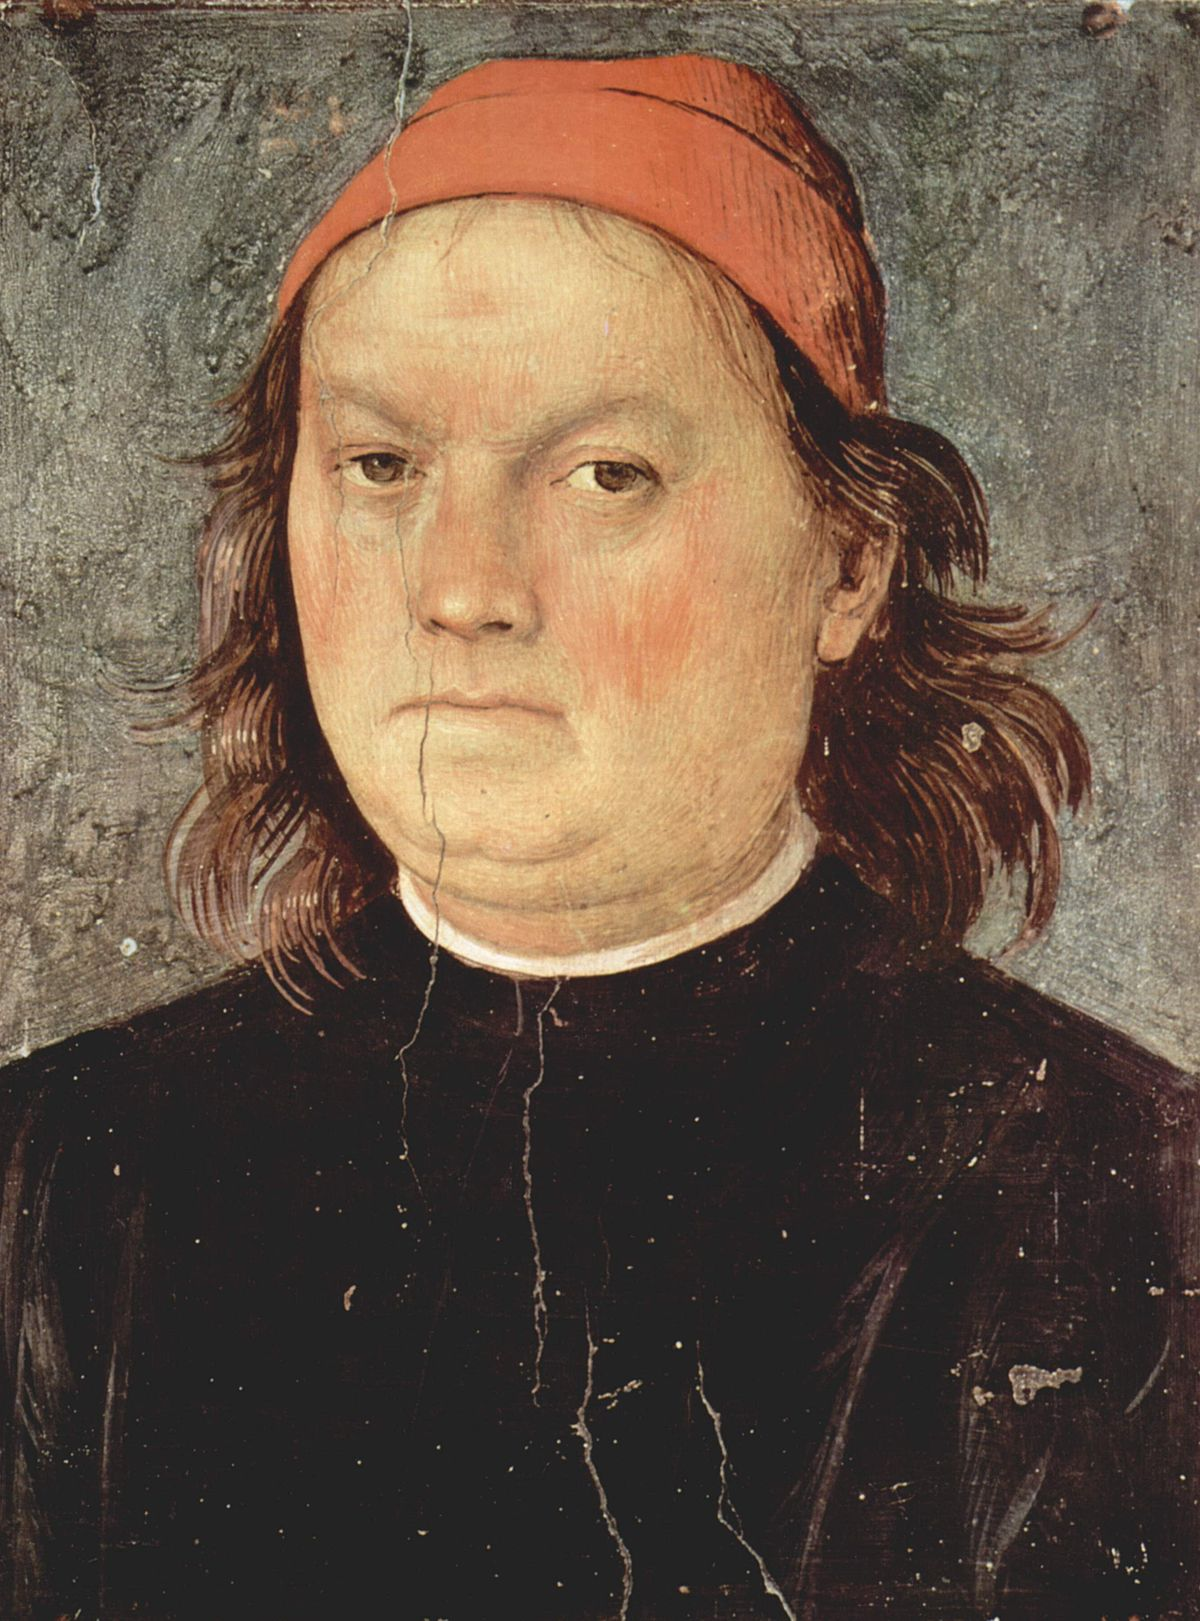 the importance of the artist pietro perugino While being young, raphael got acquainted with pietro perugino and who then became raphael's mentor perugino was one of the talented painters of those times perugino had his workshop, and raphael was a member of it.